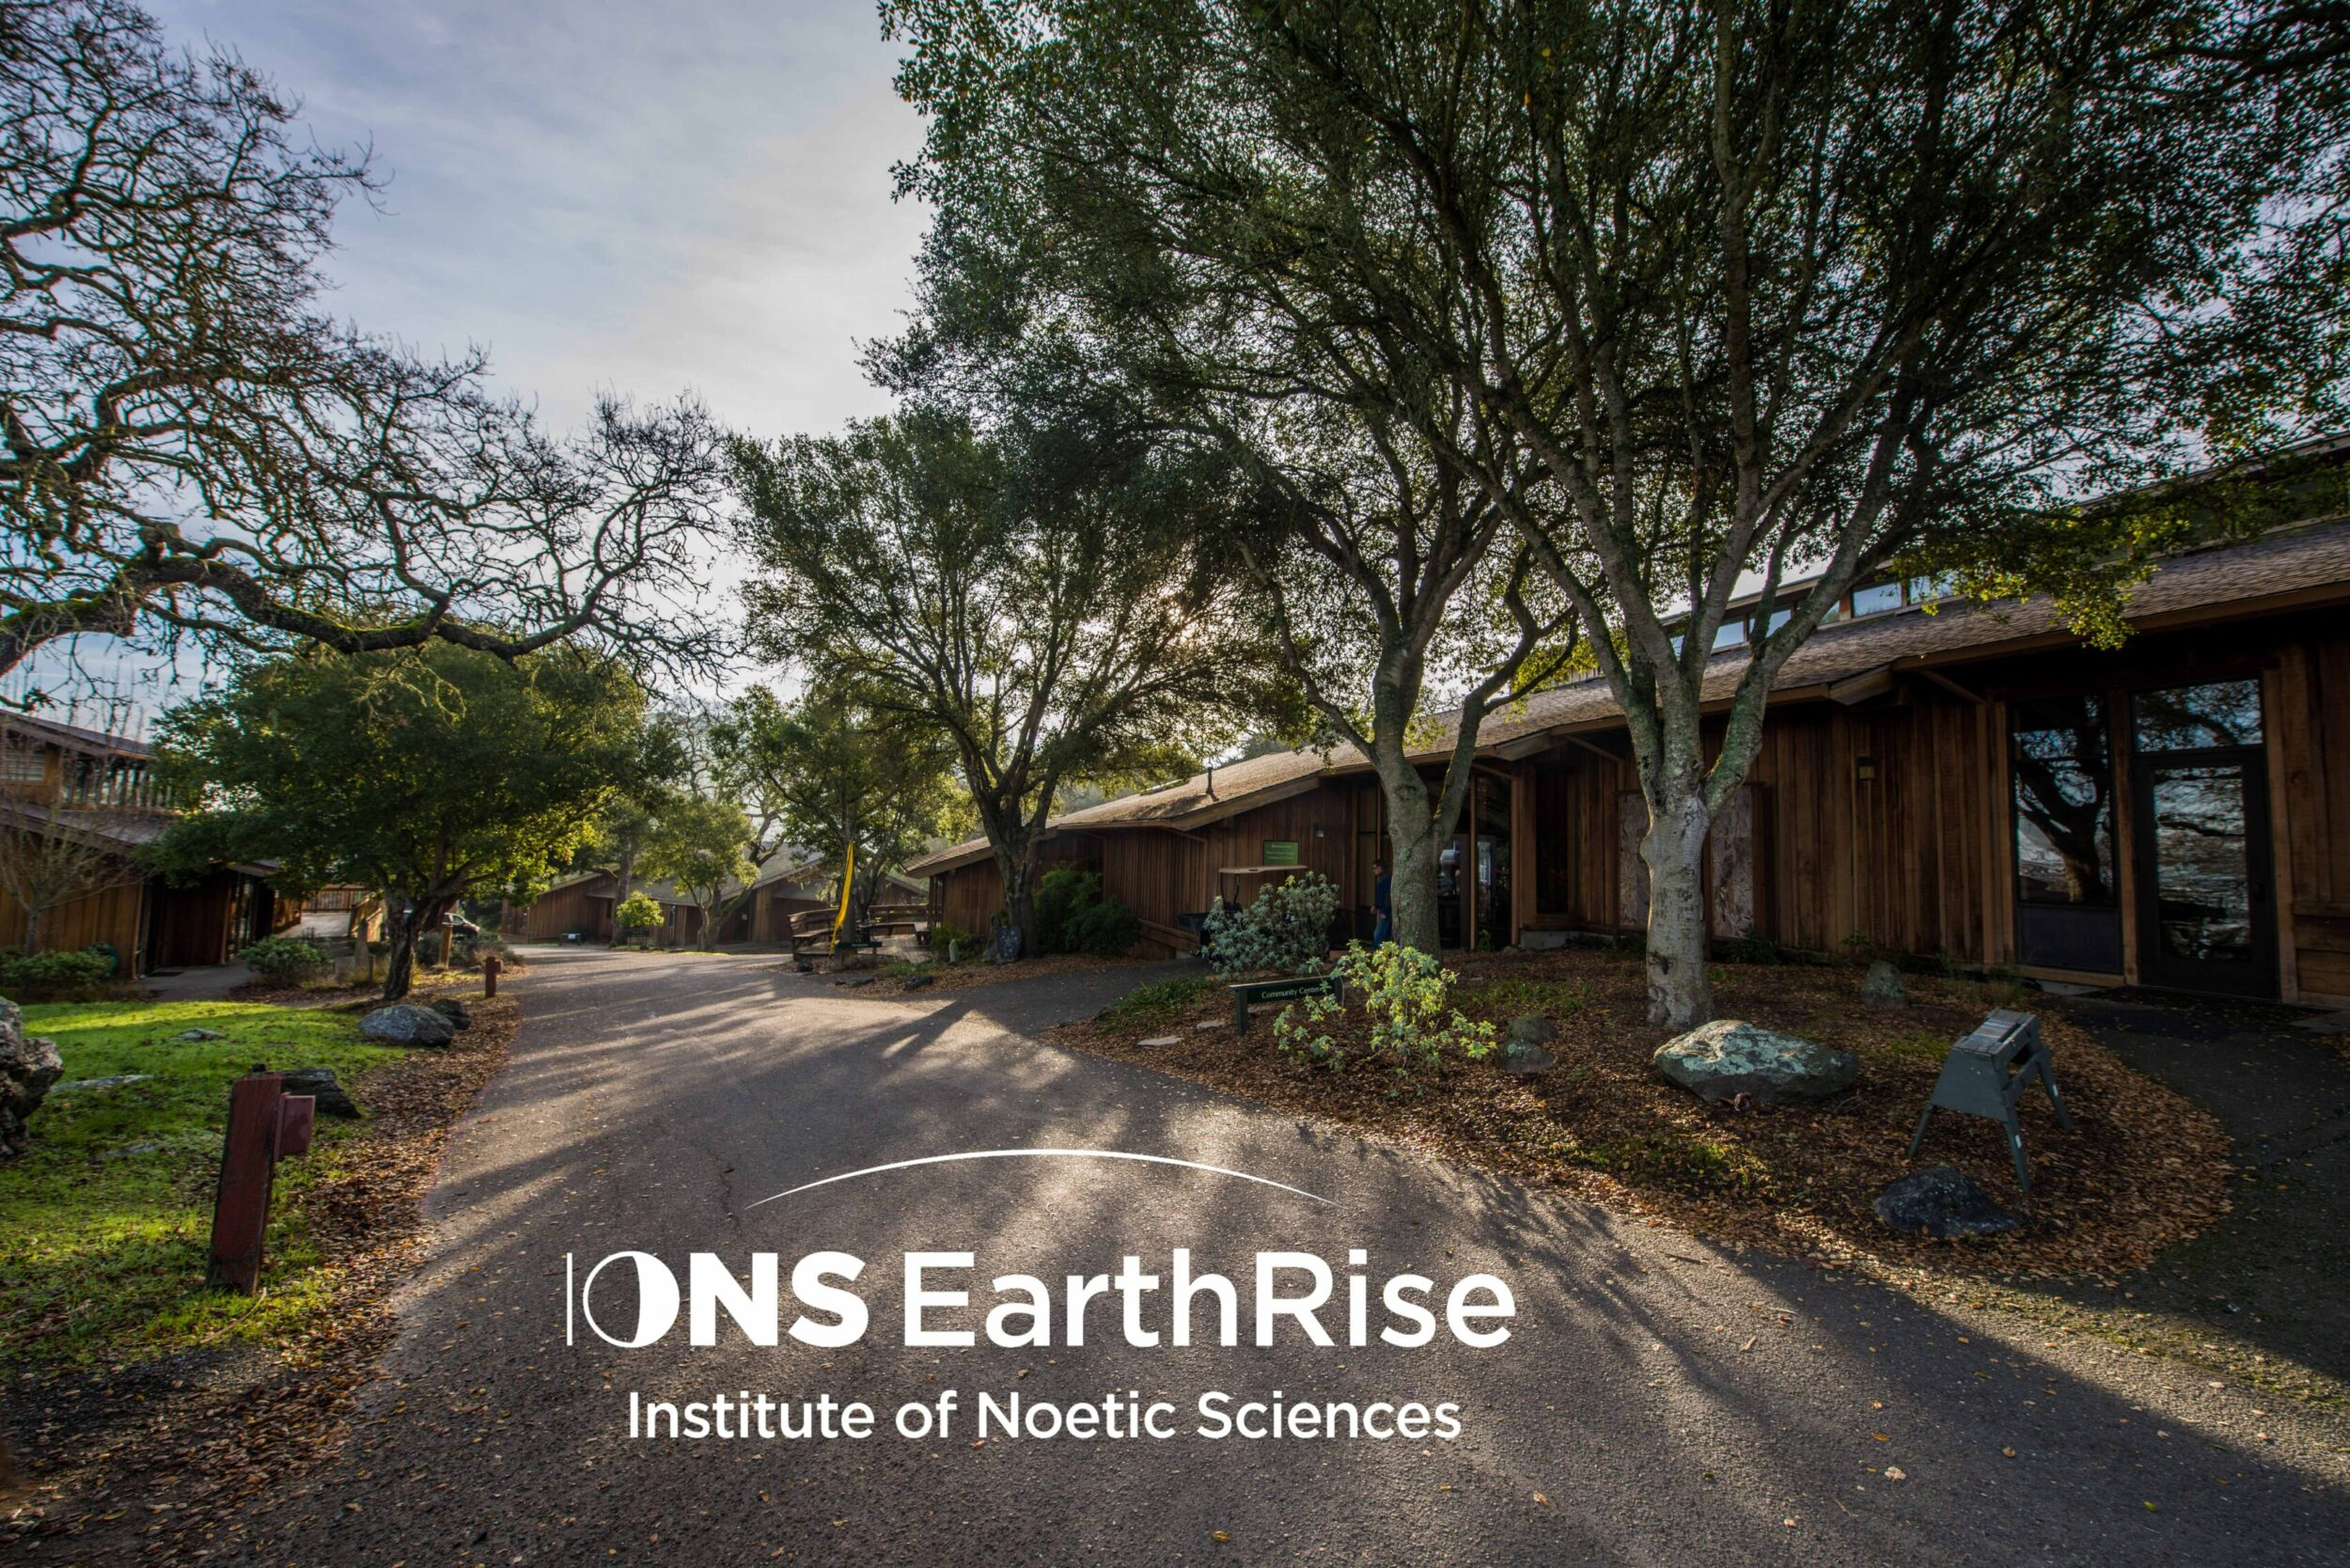 EarthRise Retreat Center at IONS